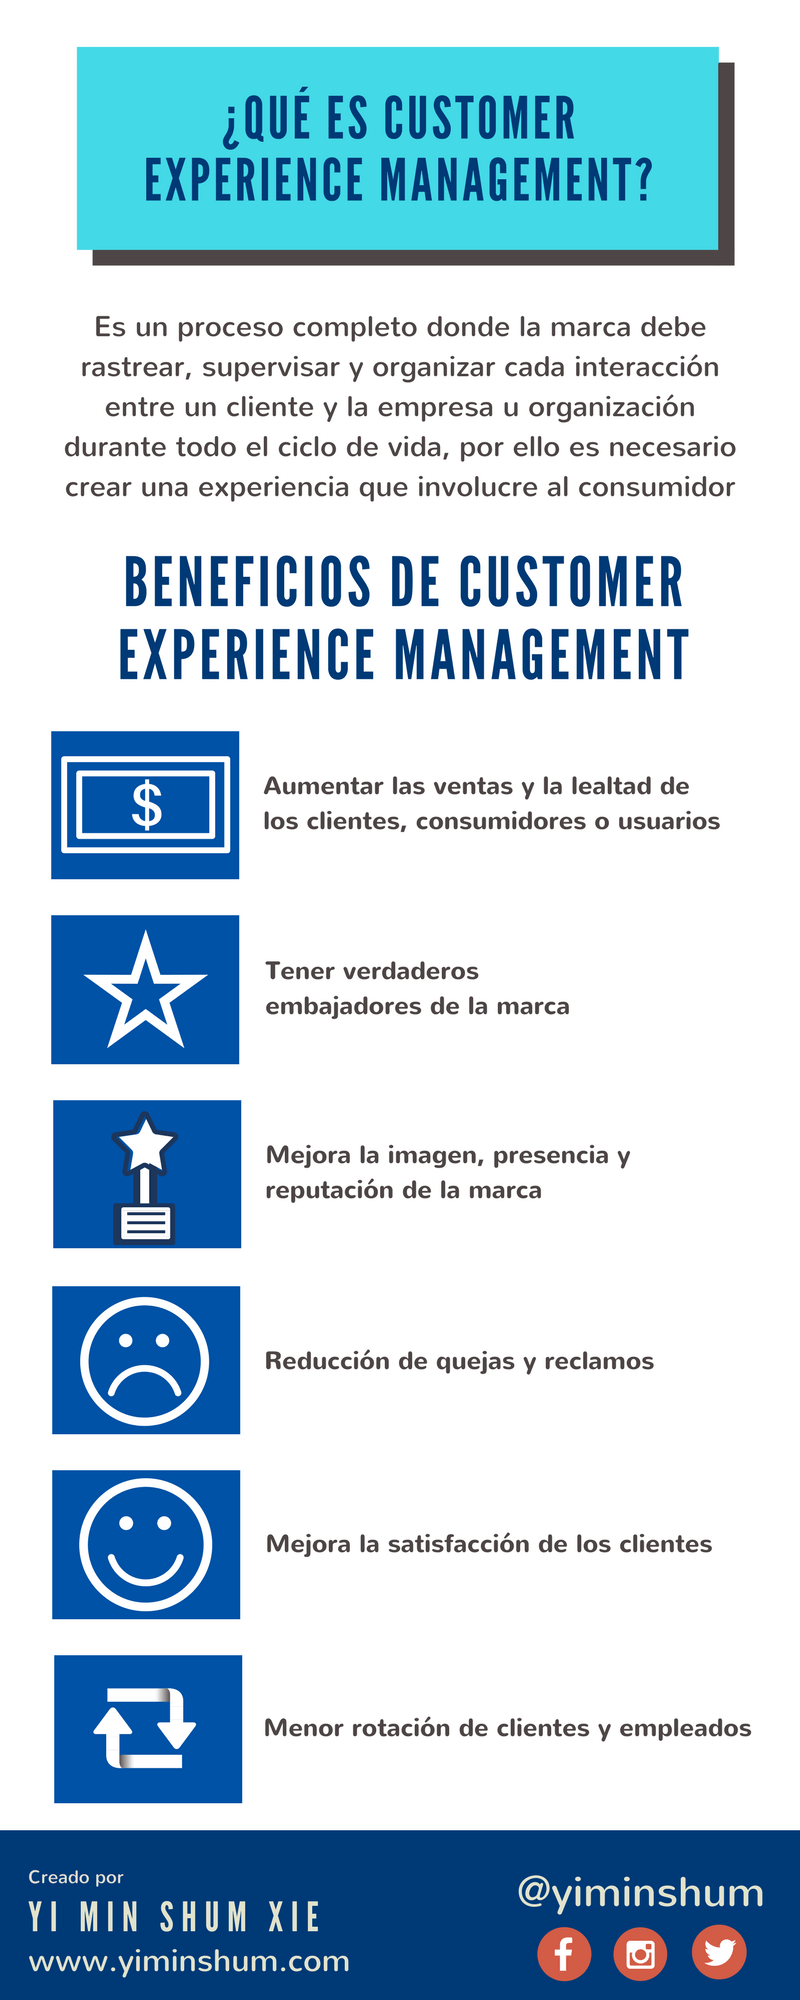 Qué es Customer Experience Management #infografia #infographic #marketing